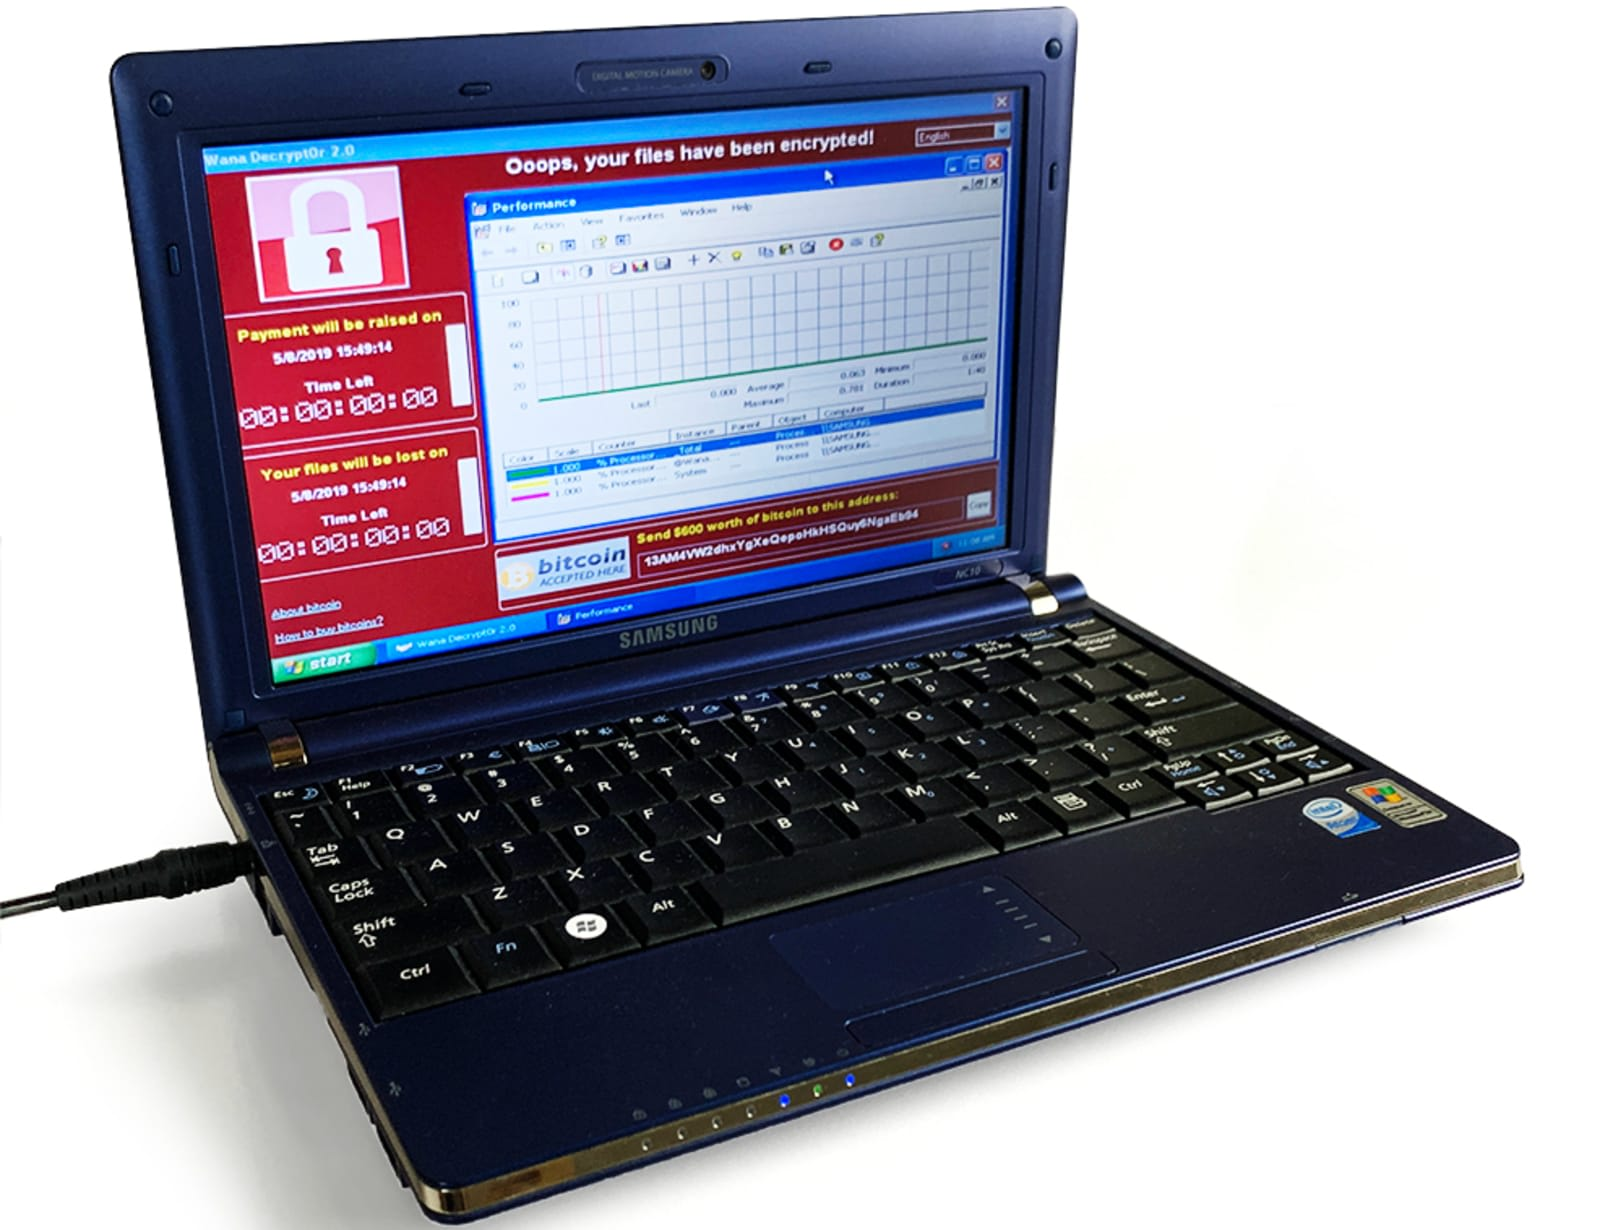 A laptop filled with six of the world's most dangerous viruses is on sale for more than $1 millionको लागि तस्बिर परिणाम